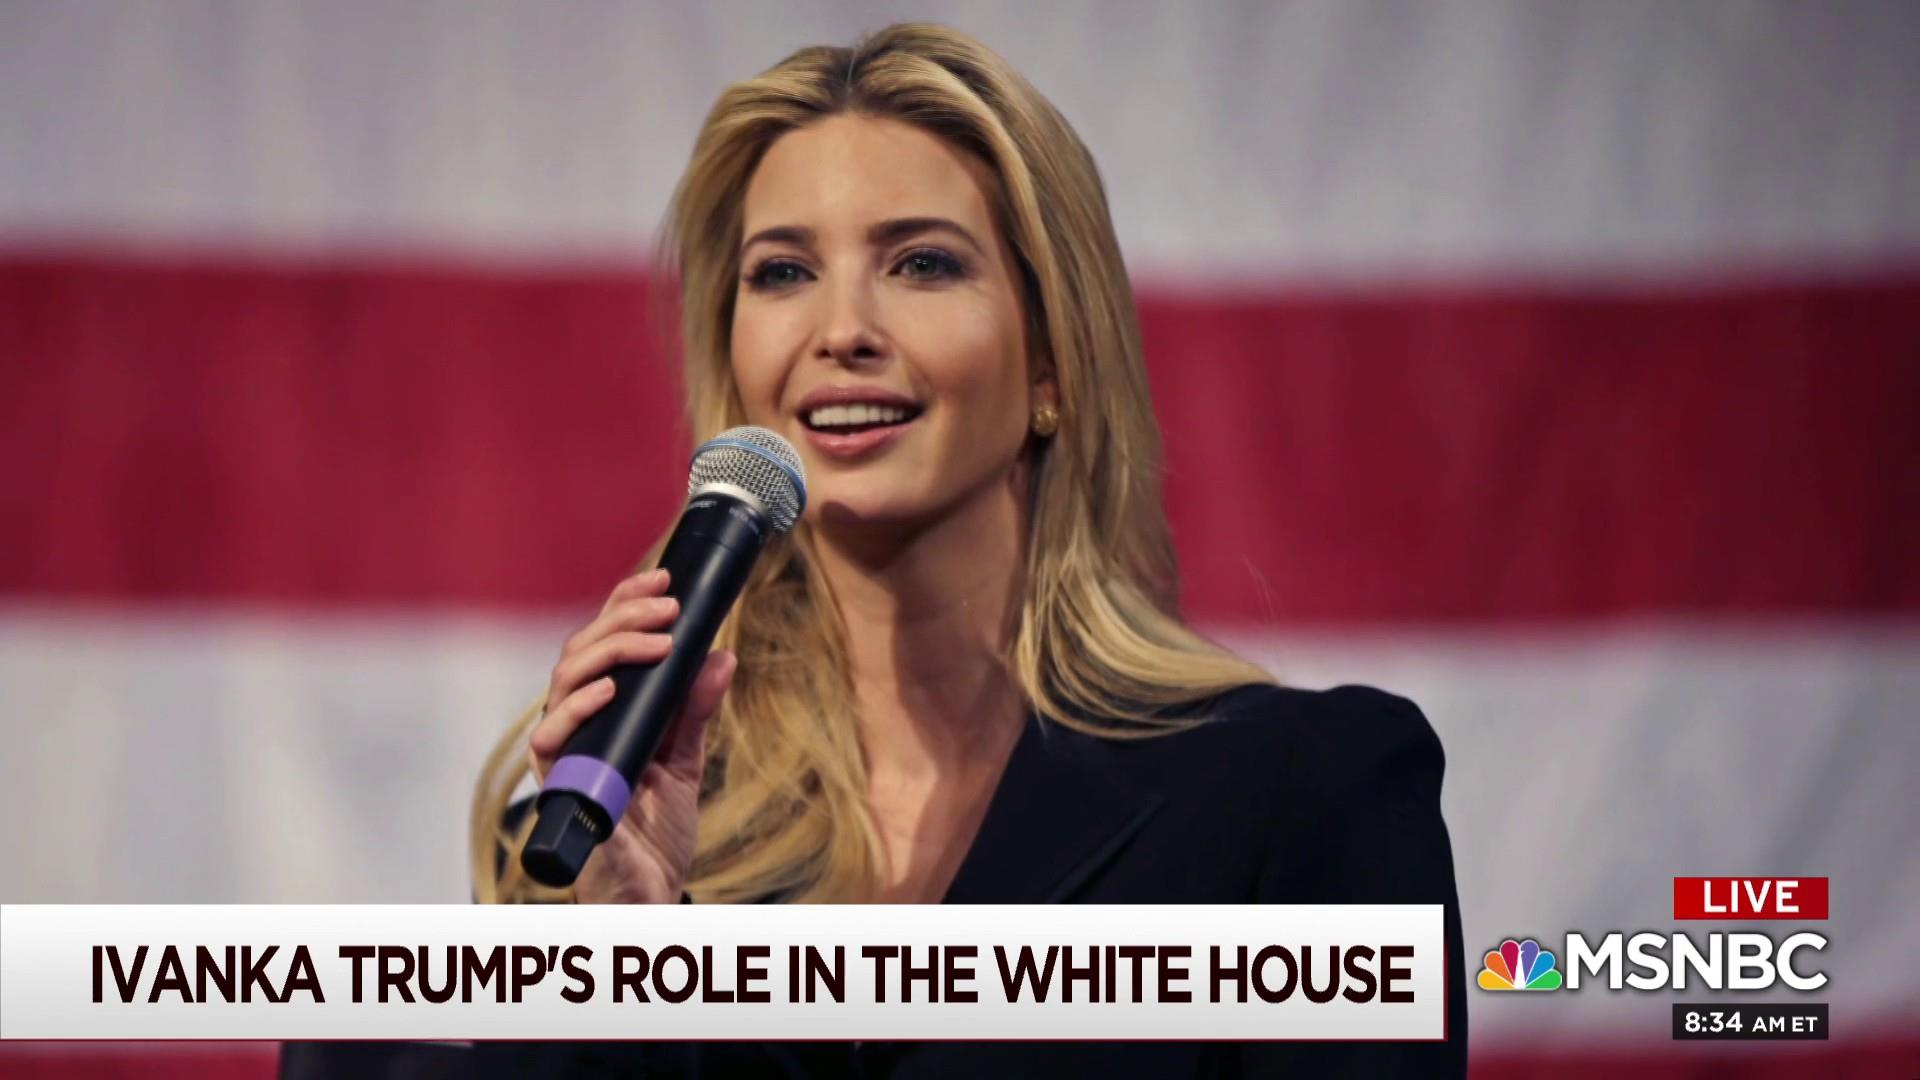 Complicated bond with dad may have kept Ivanka quiet: Reporter